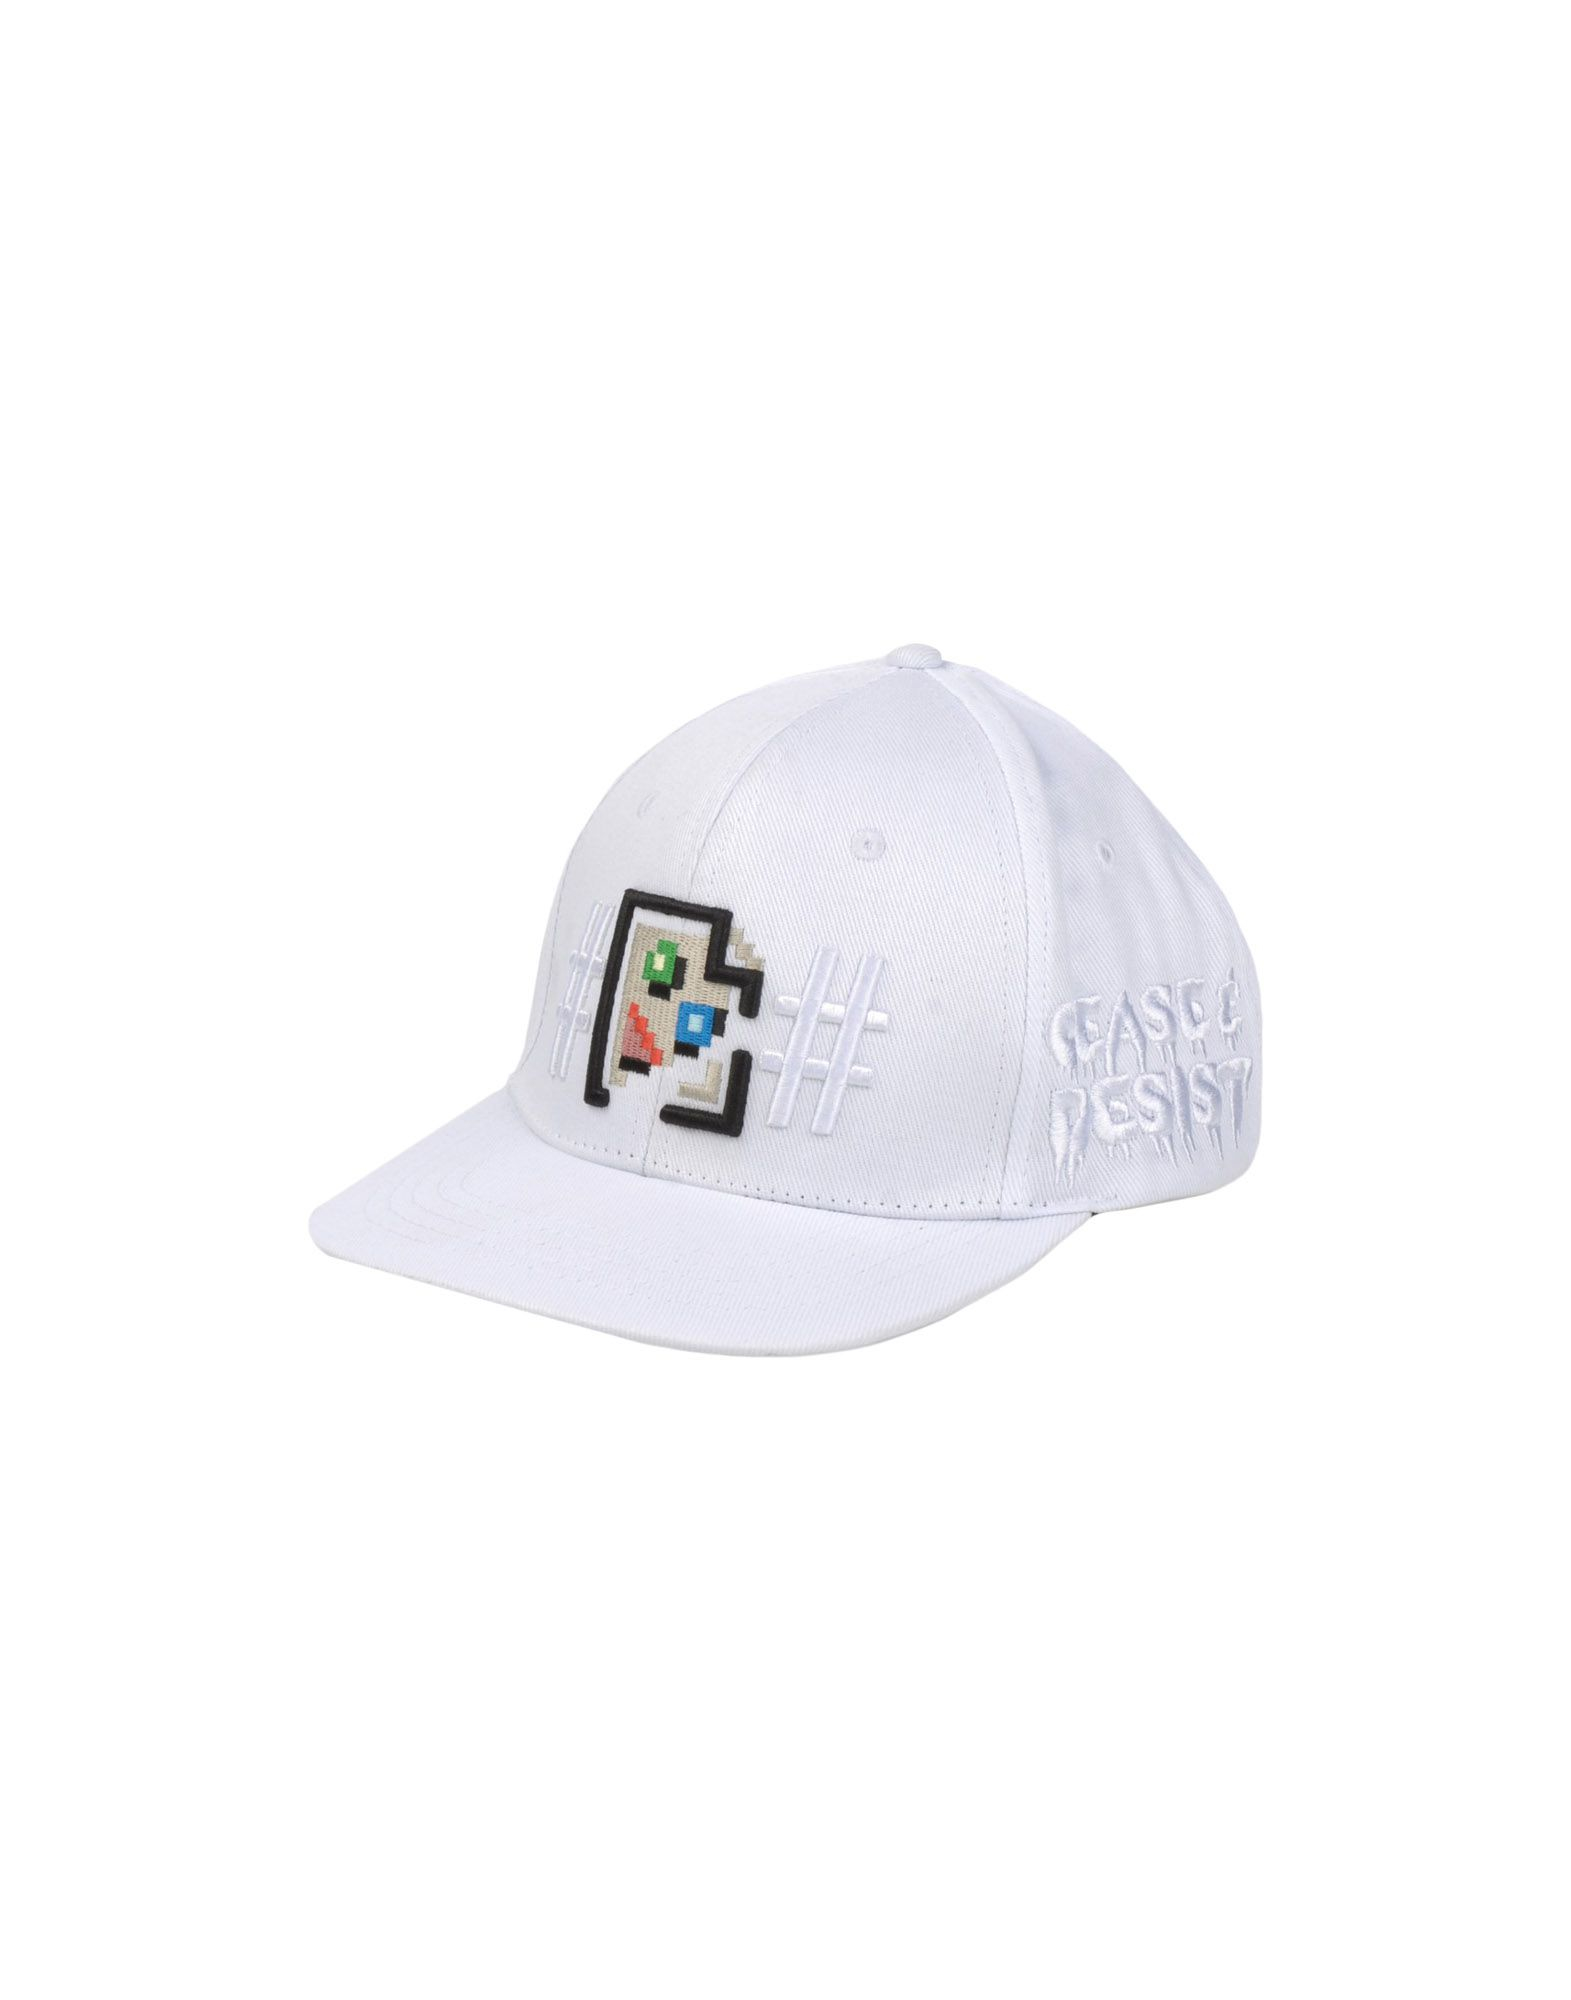 Lyst been trill hat in white for men jpg 1571x2000 Trill hats 67a626784fd7